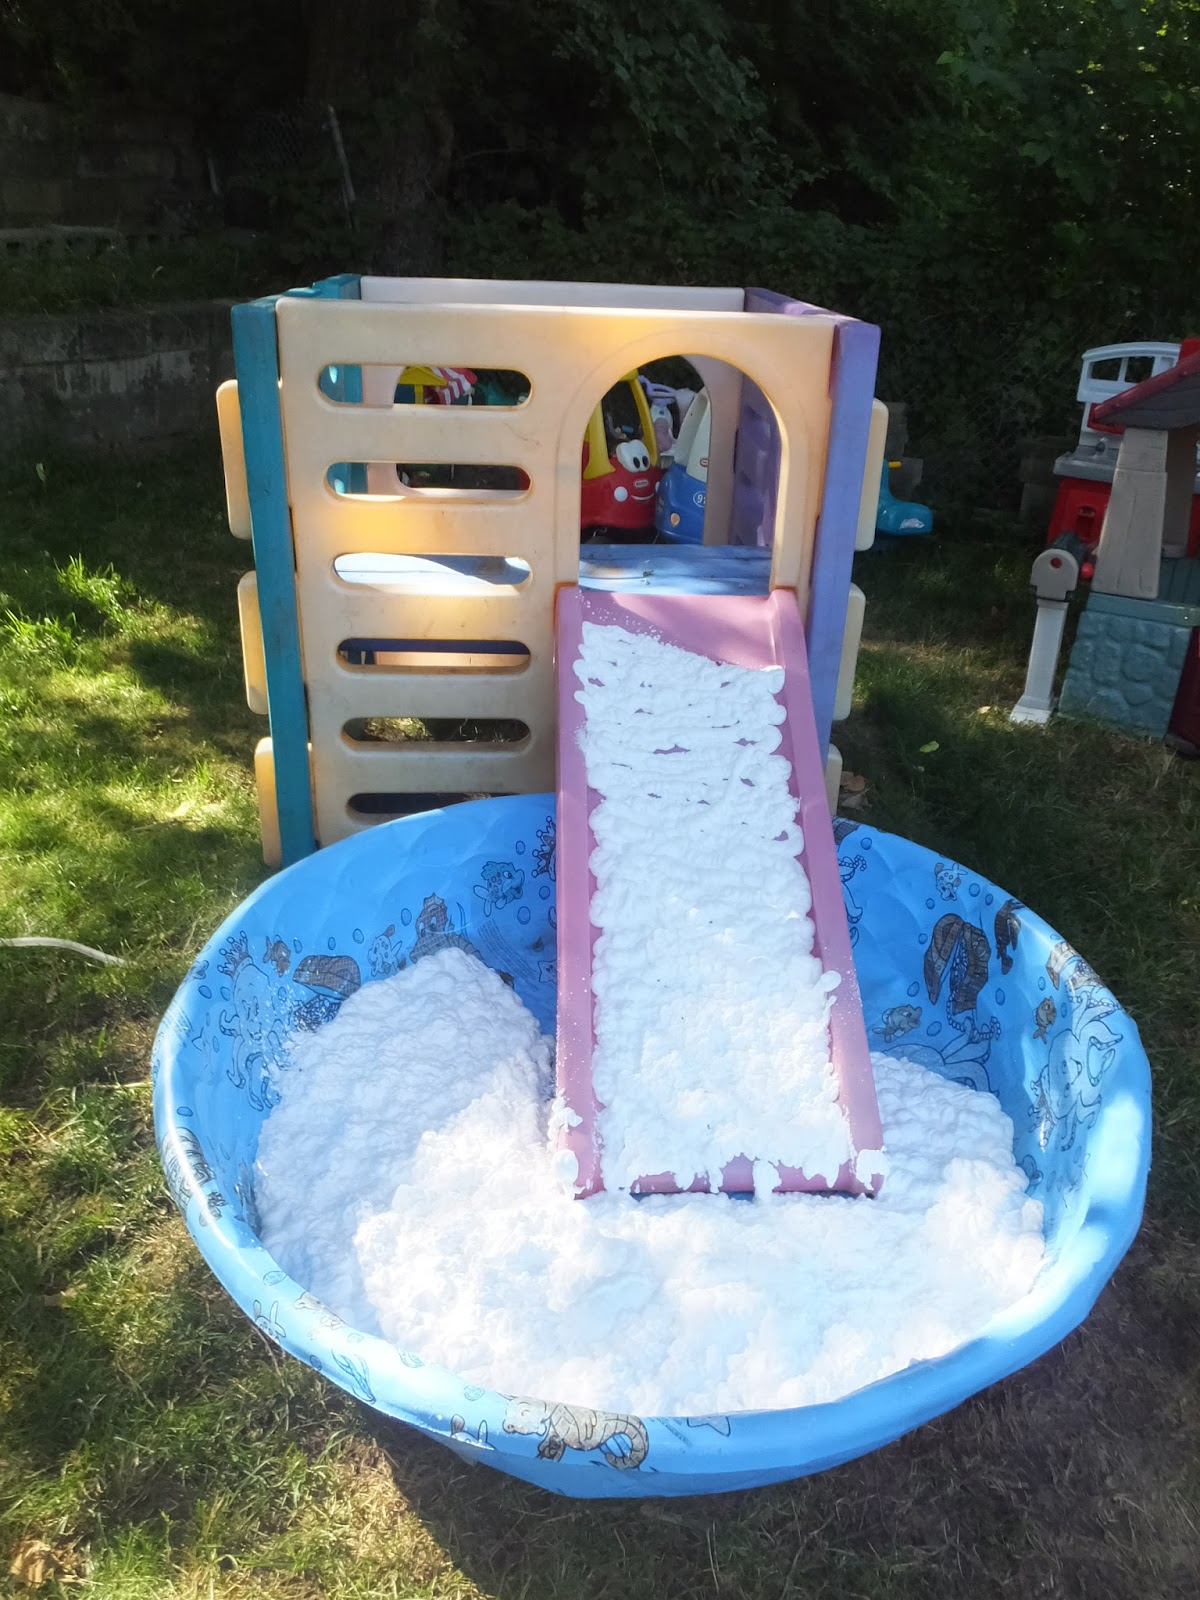 kidspert create an obstacle course in your backyard with kiddie pools